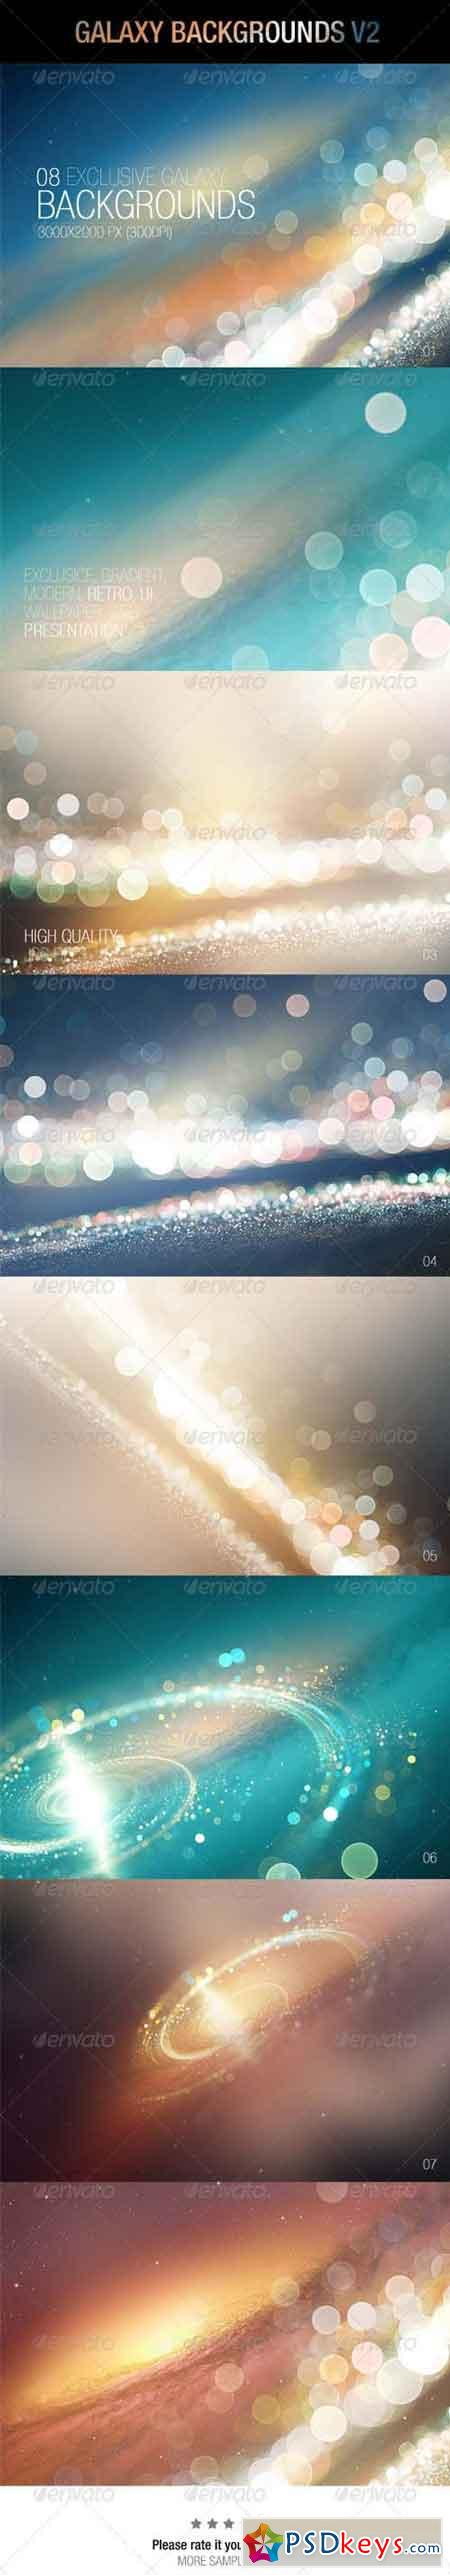 Galaxy Backgrounds V2 6859974